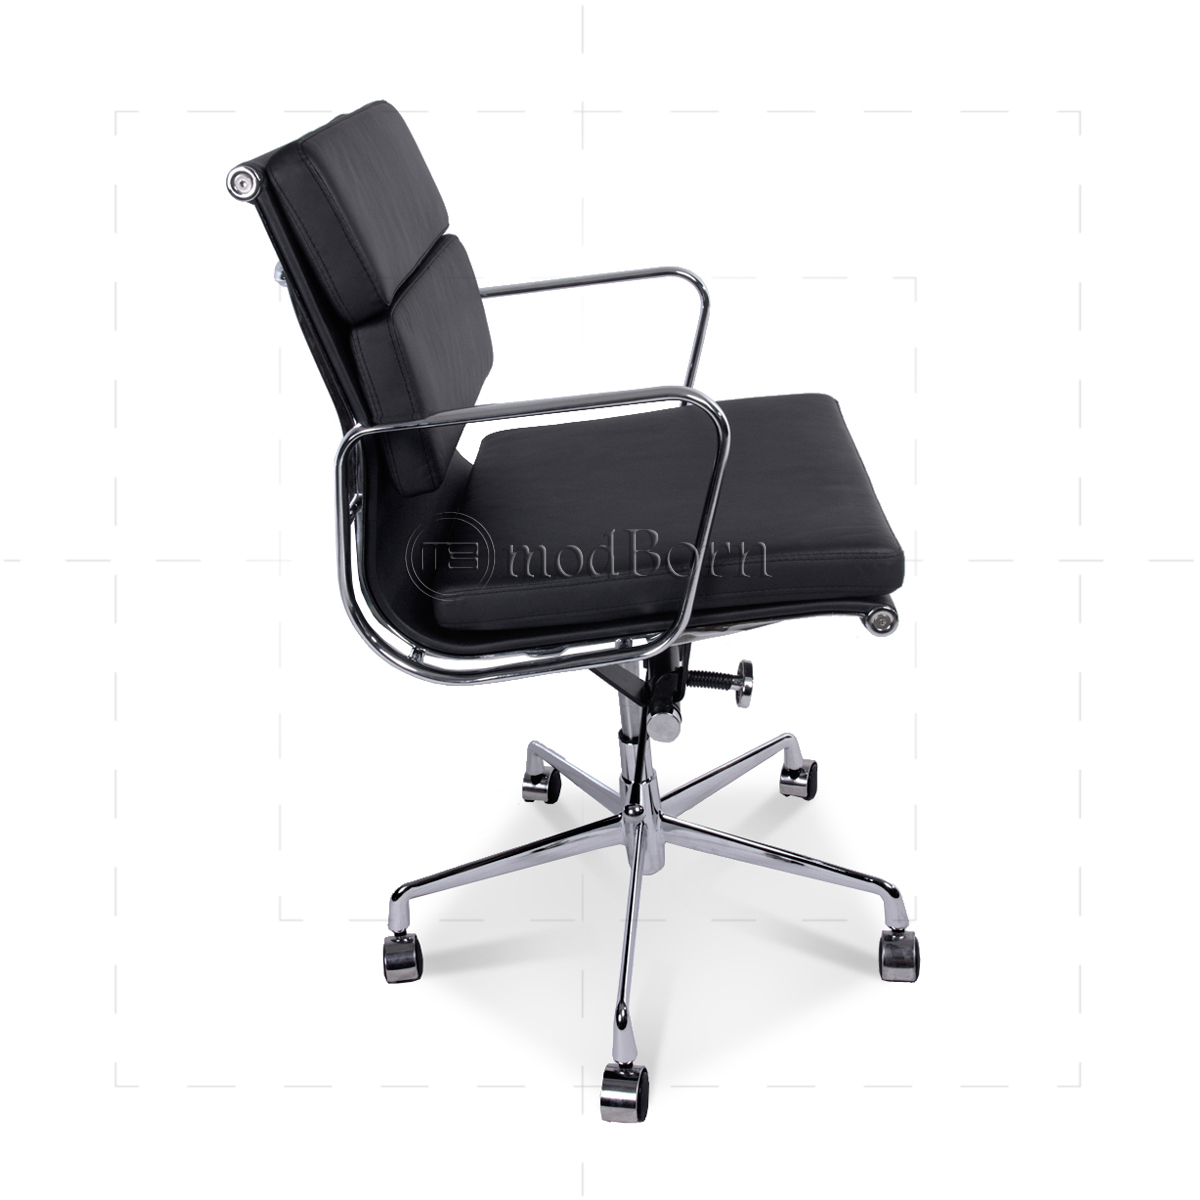 ea217 eames style office chair low back soft pad black leather bedroomsweet eames office chair replicas style